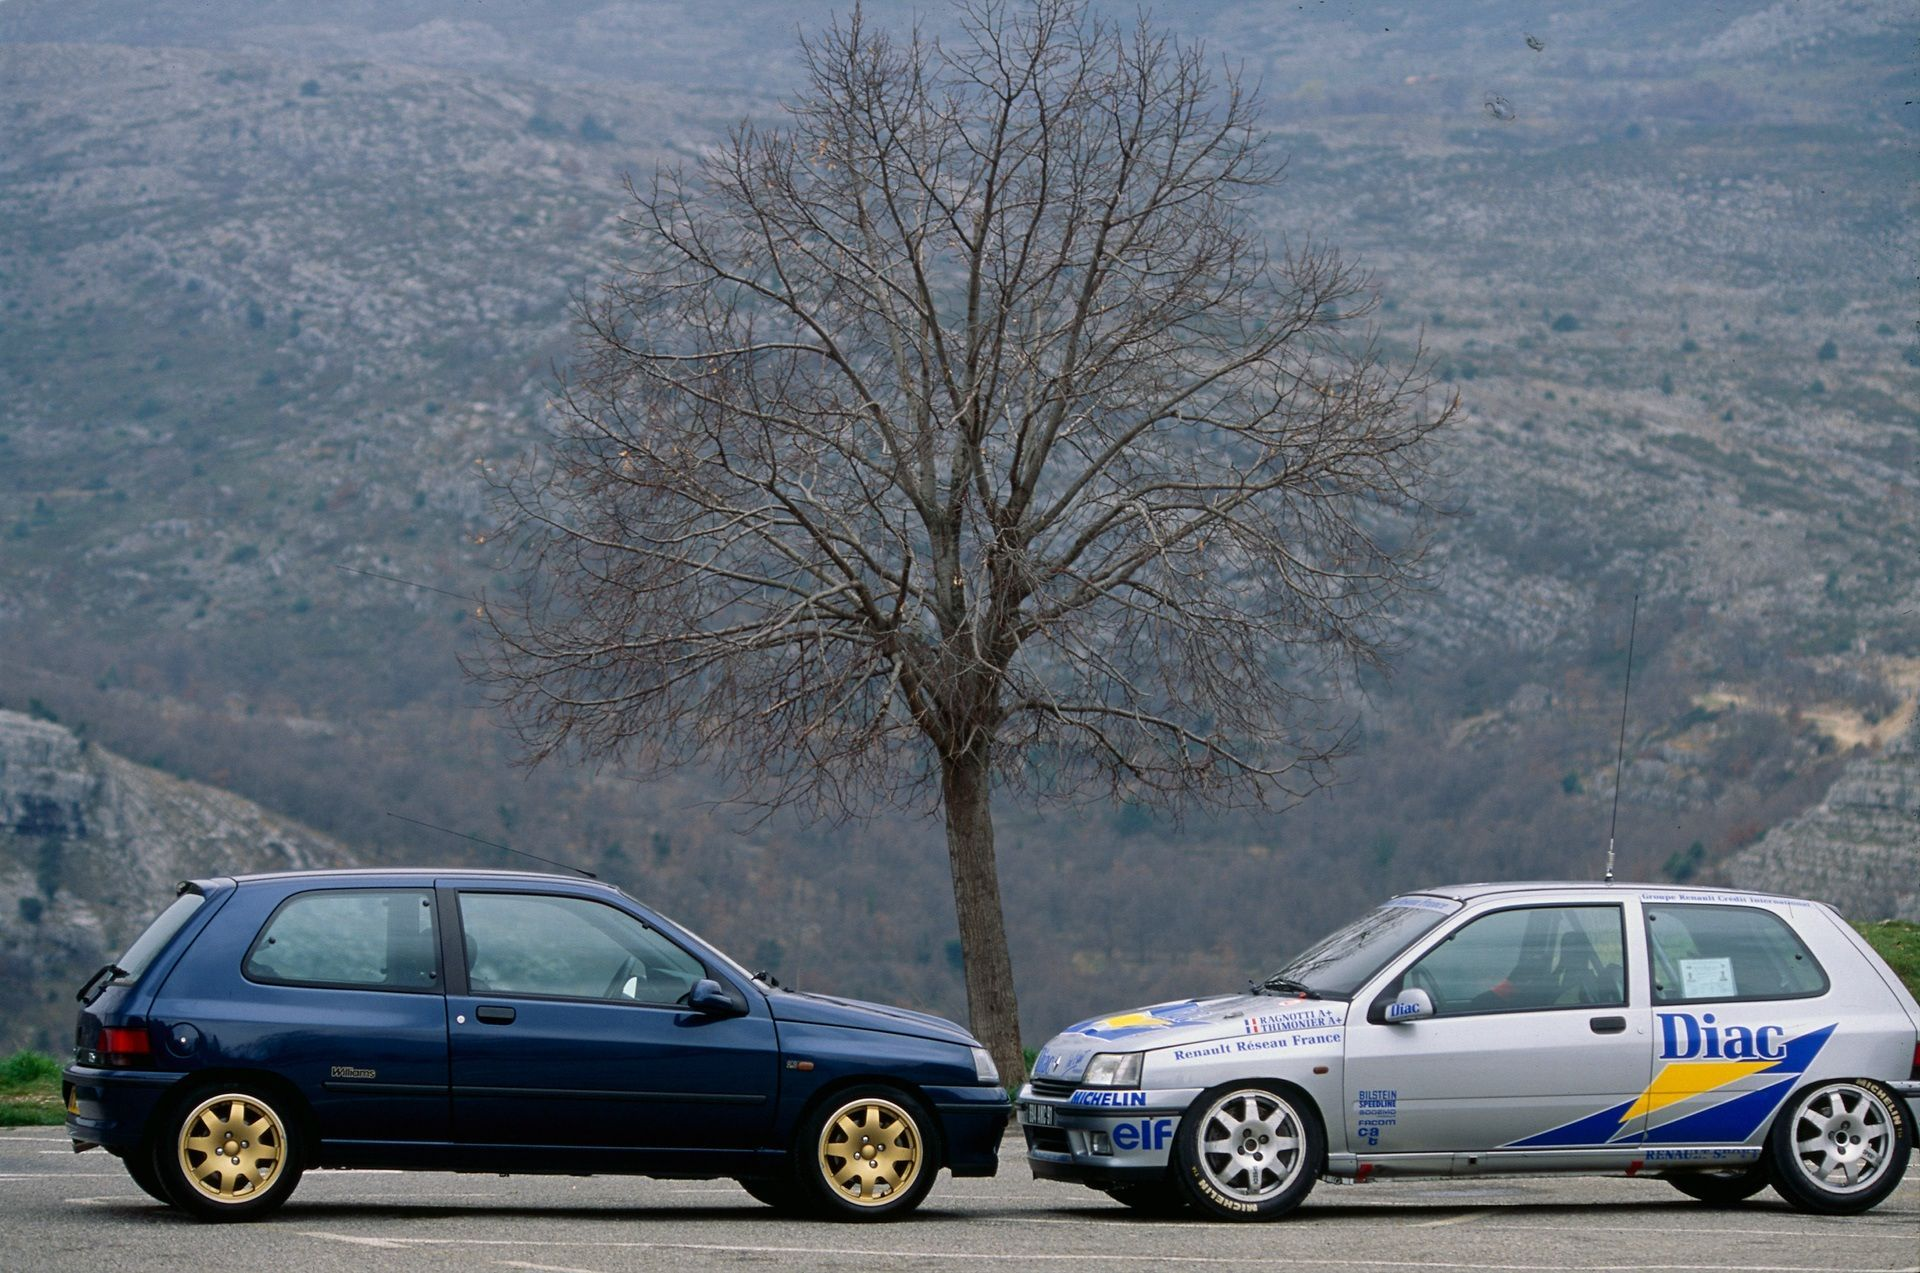 2020-30-years-of-Renault-CLIO-Renault-CLIO-I-1990-1999-9